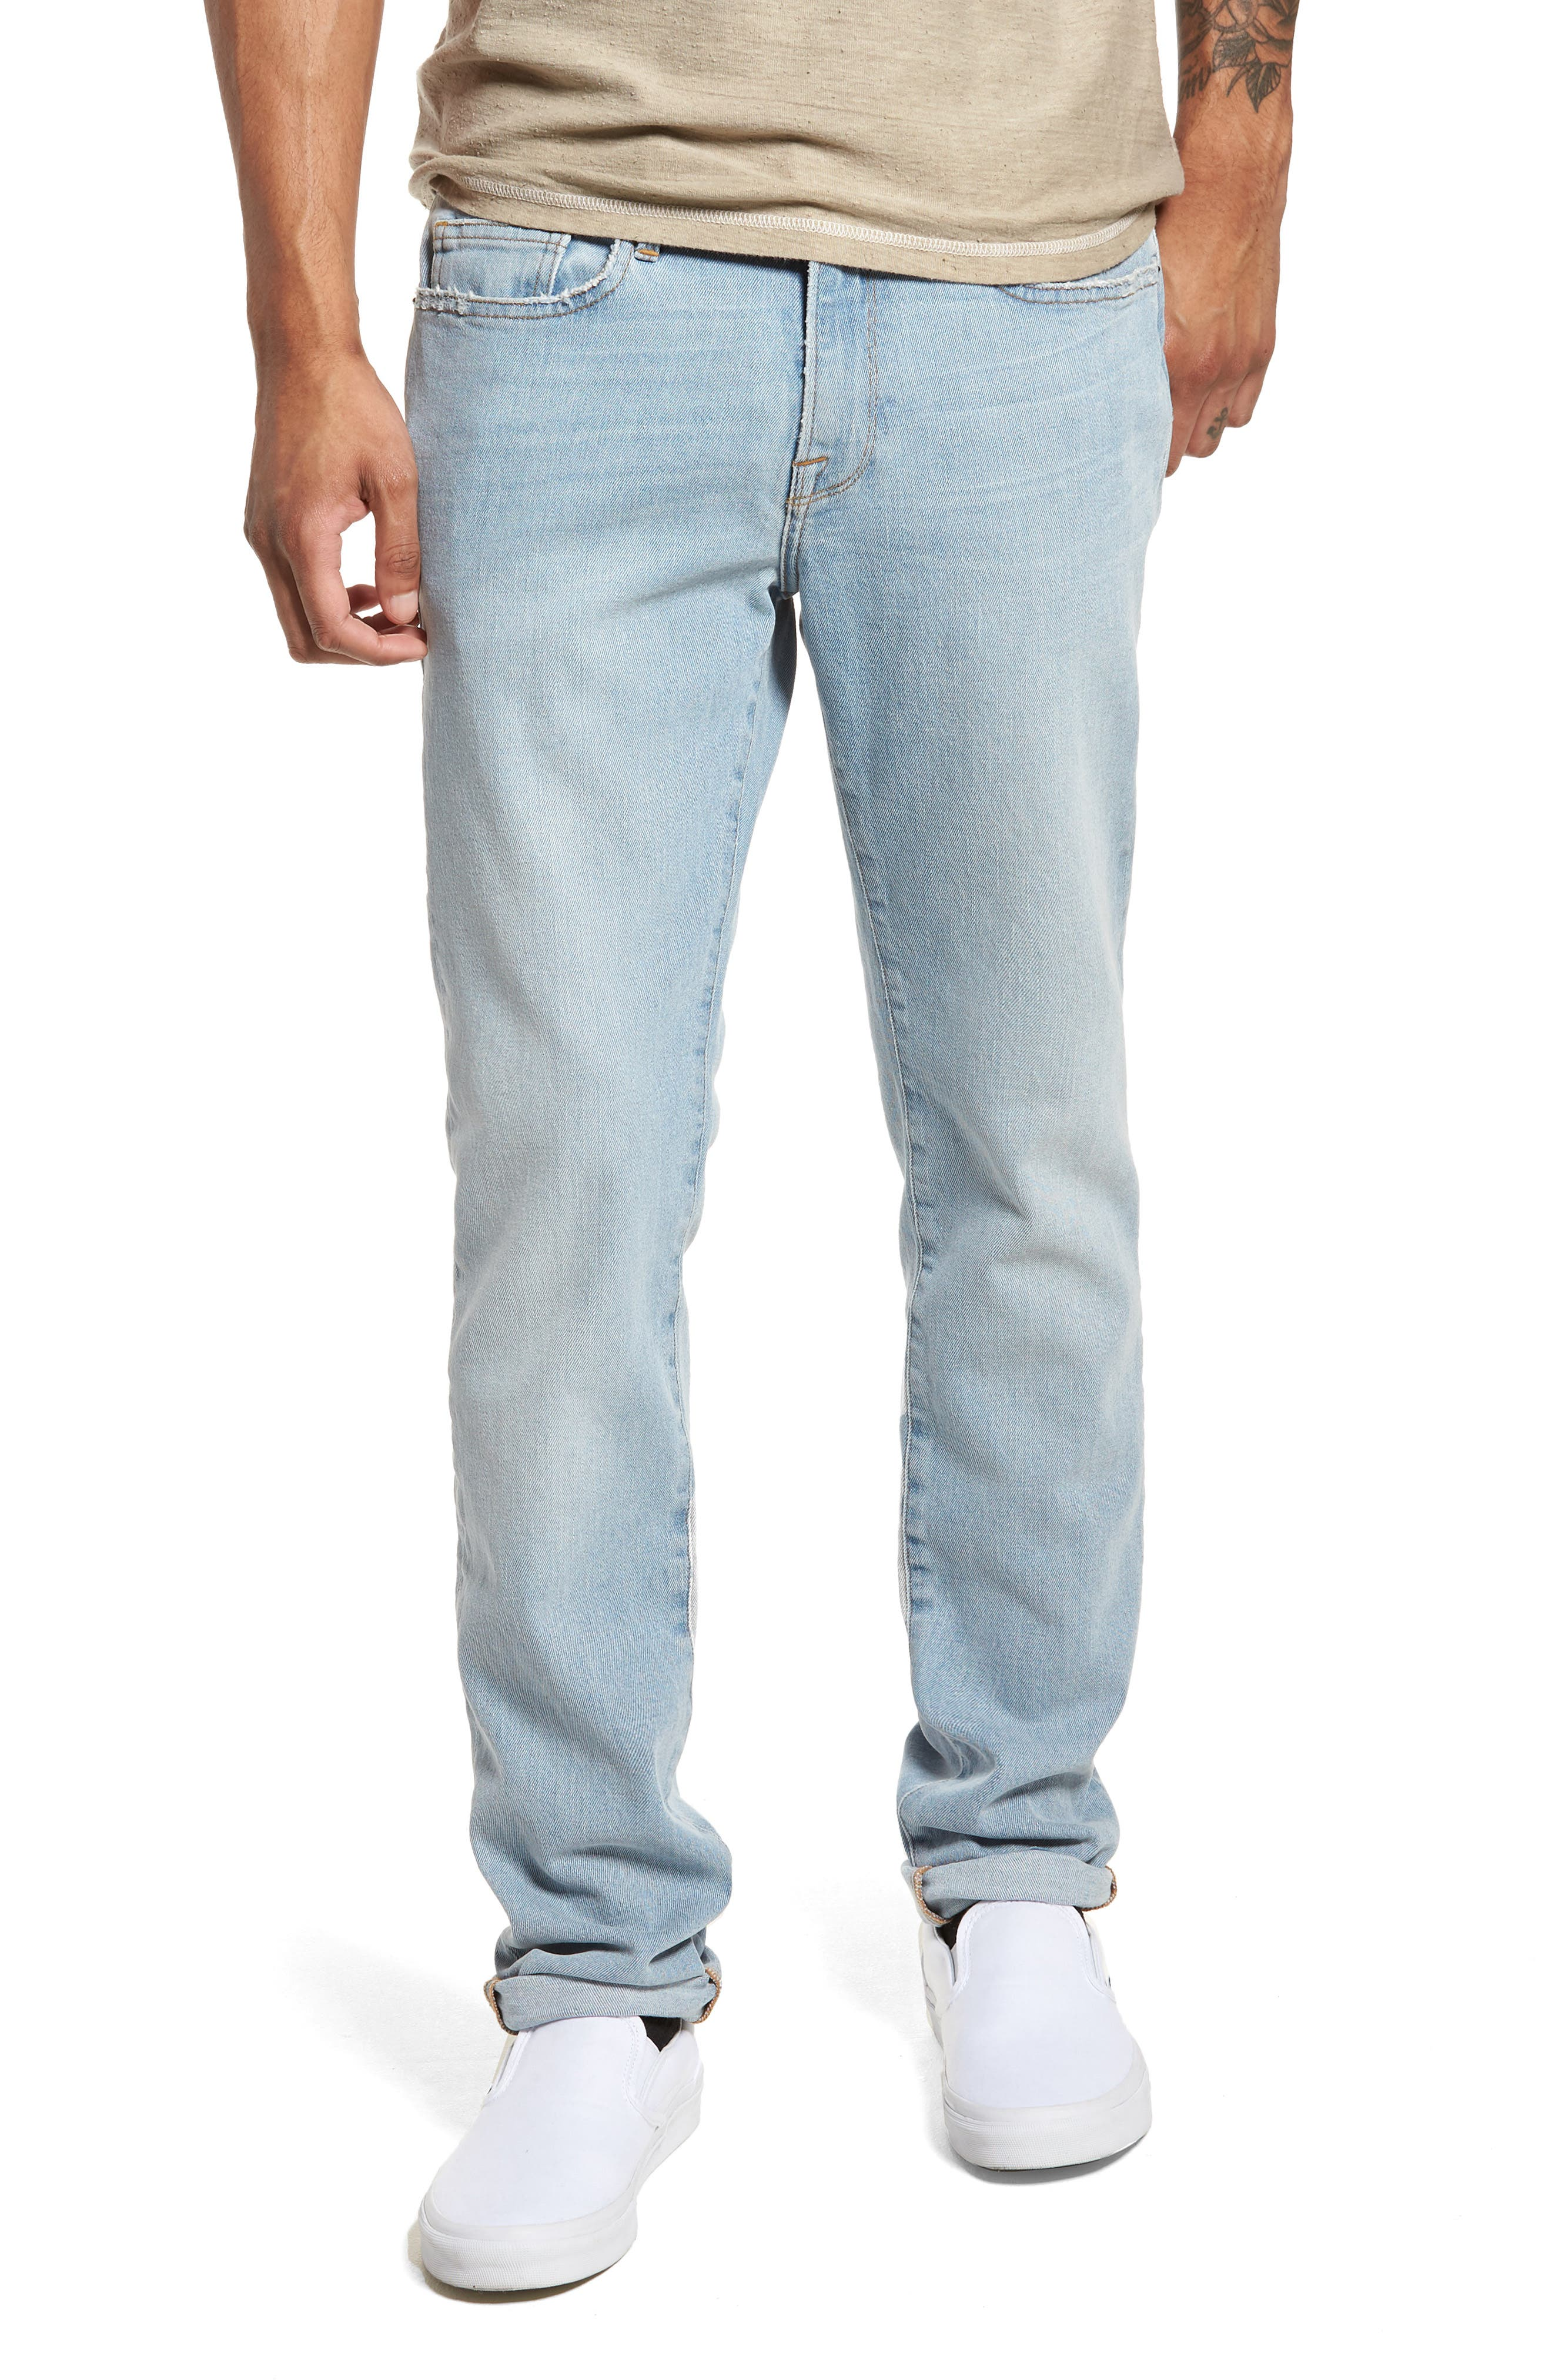 L'Homme Skinny Fit Jeans,                             Main thumbnail 1, color,                             450